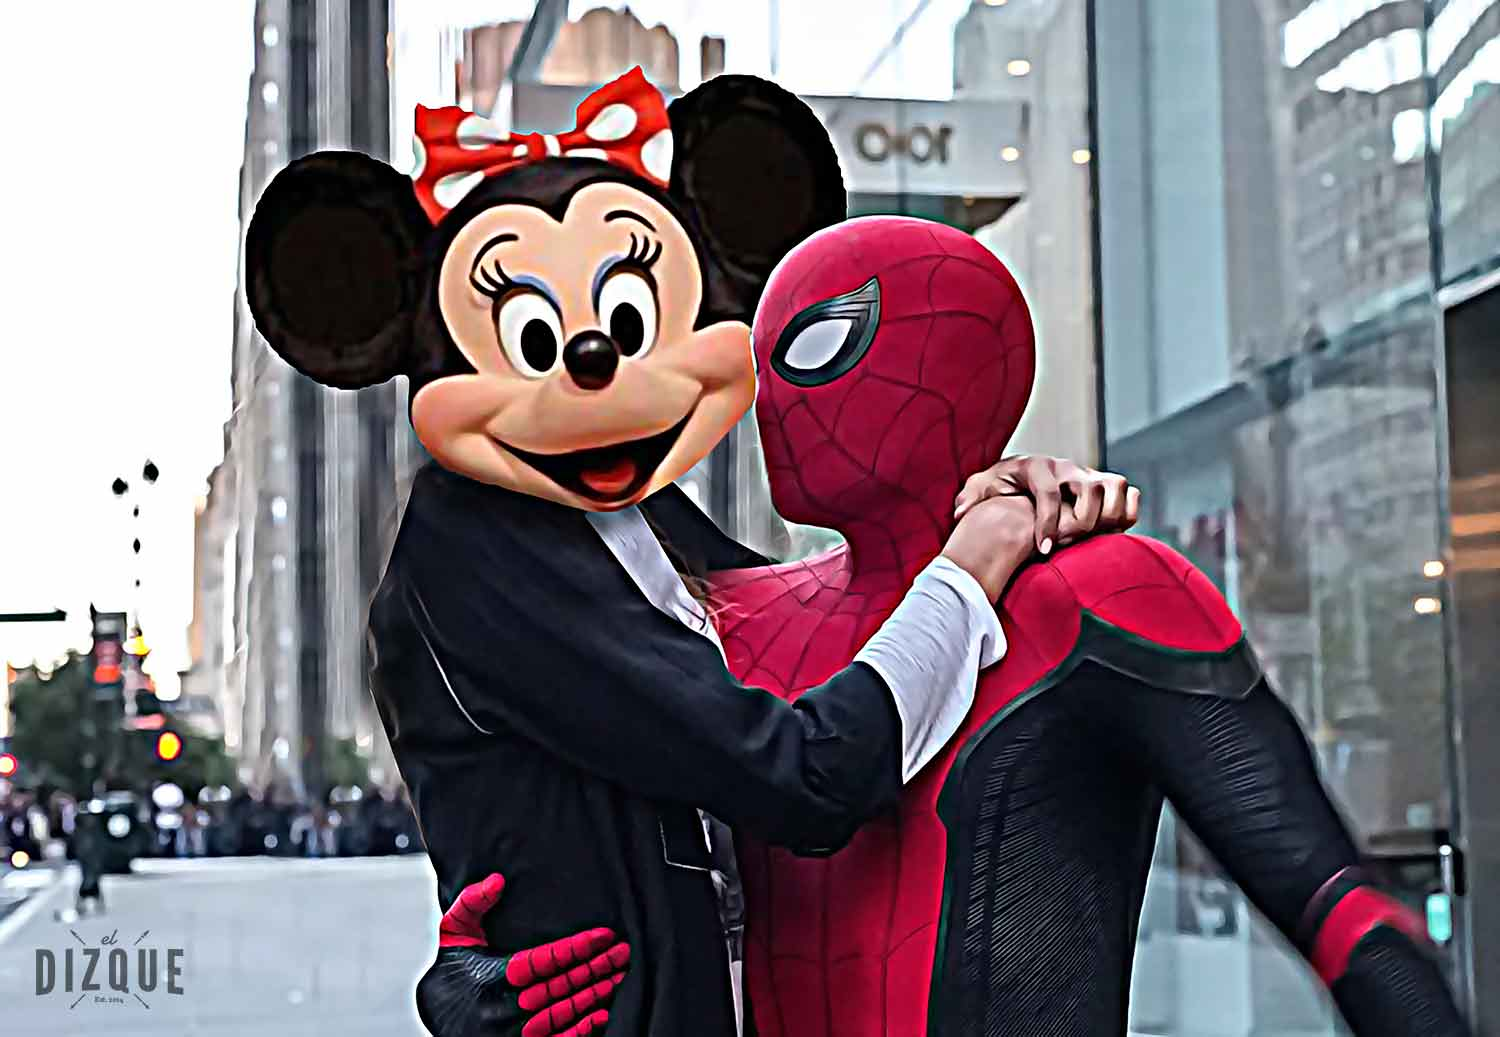 Spider-Man Disney Sony